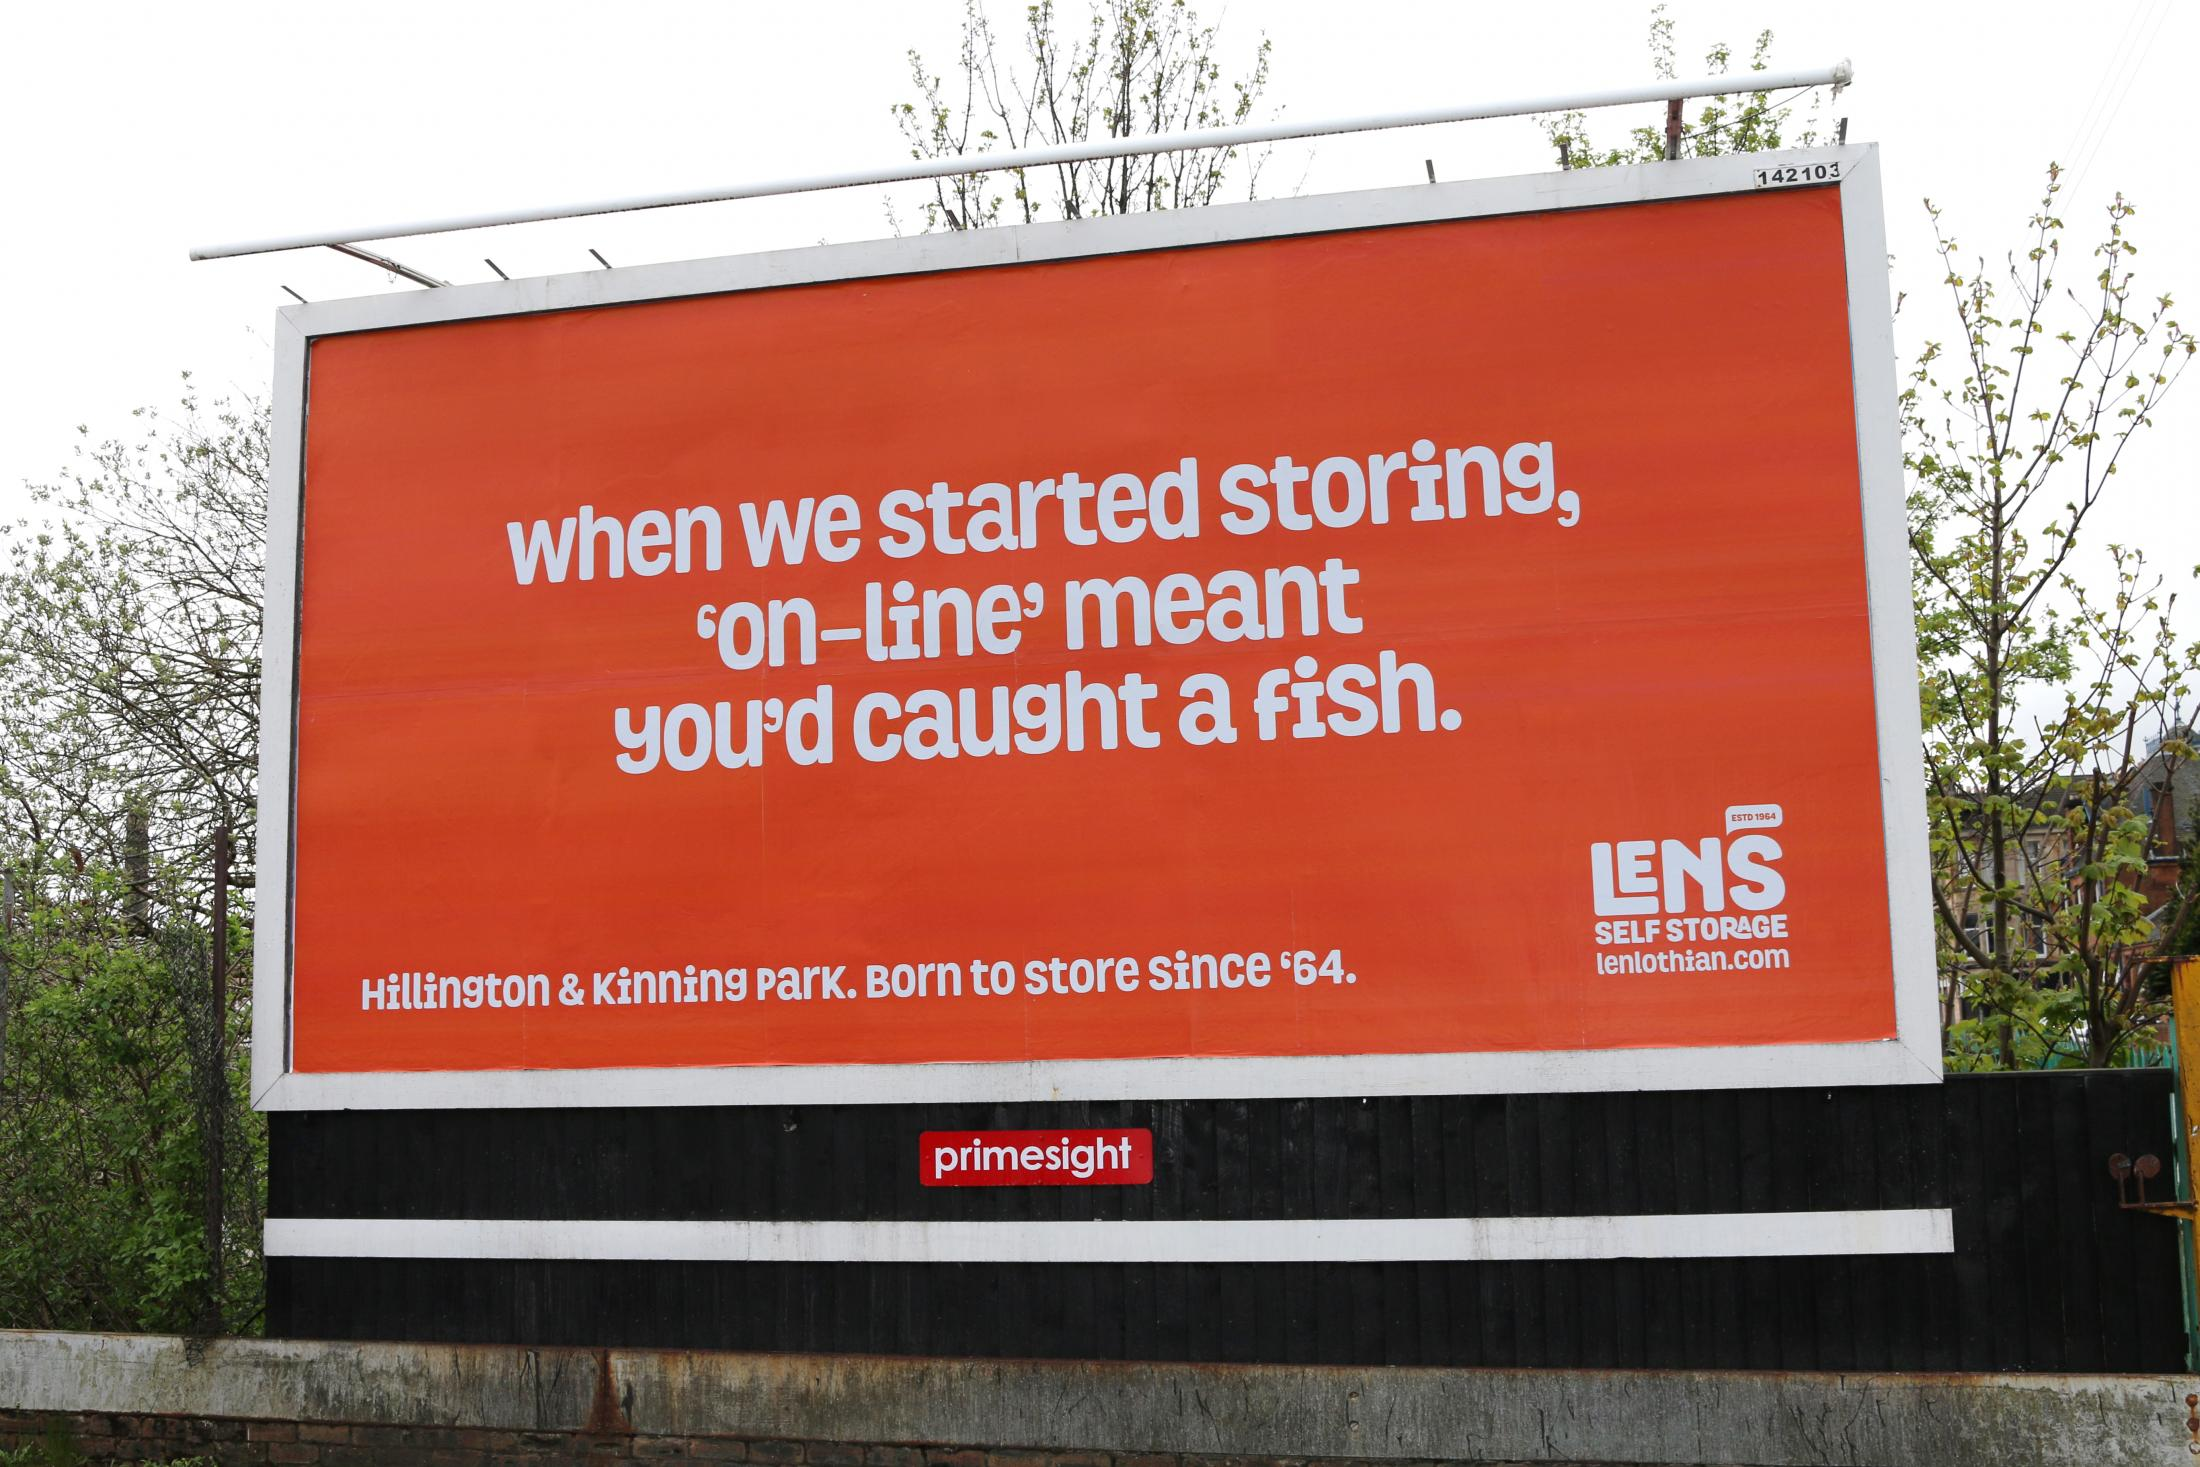 Len's Self Storage Outdoor Ad - Born To Store Since '64, 1